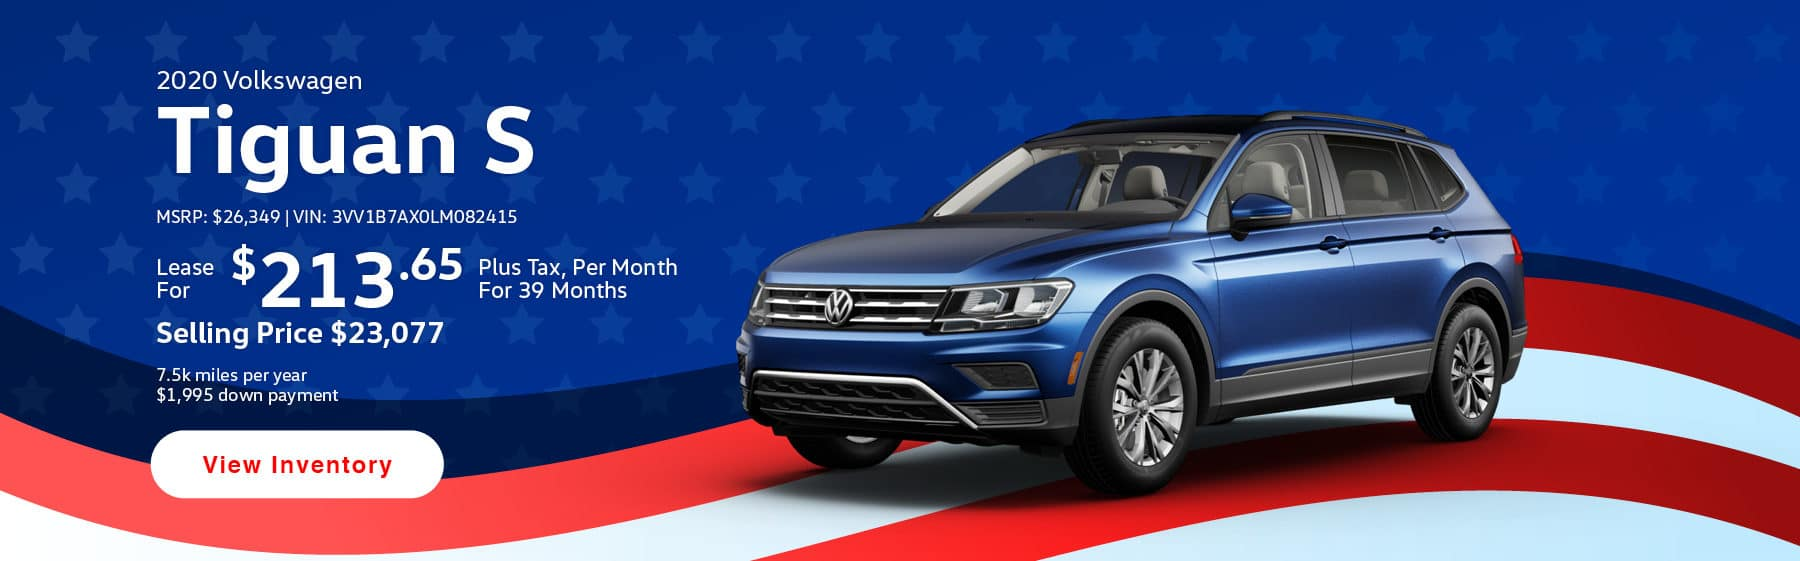 Lease the 2020 Tiguan S for $213.65 per month, plus tax for 39 months.